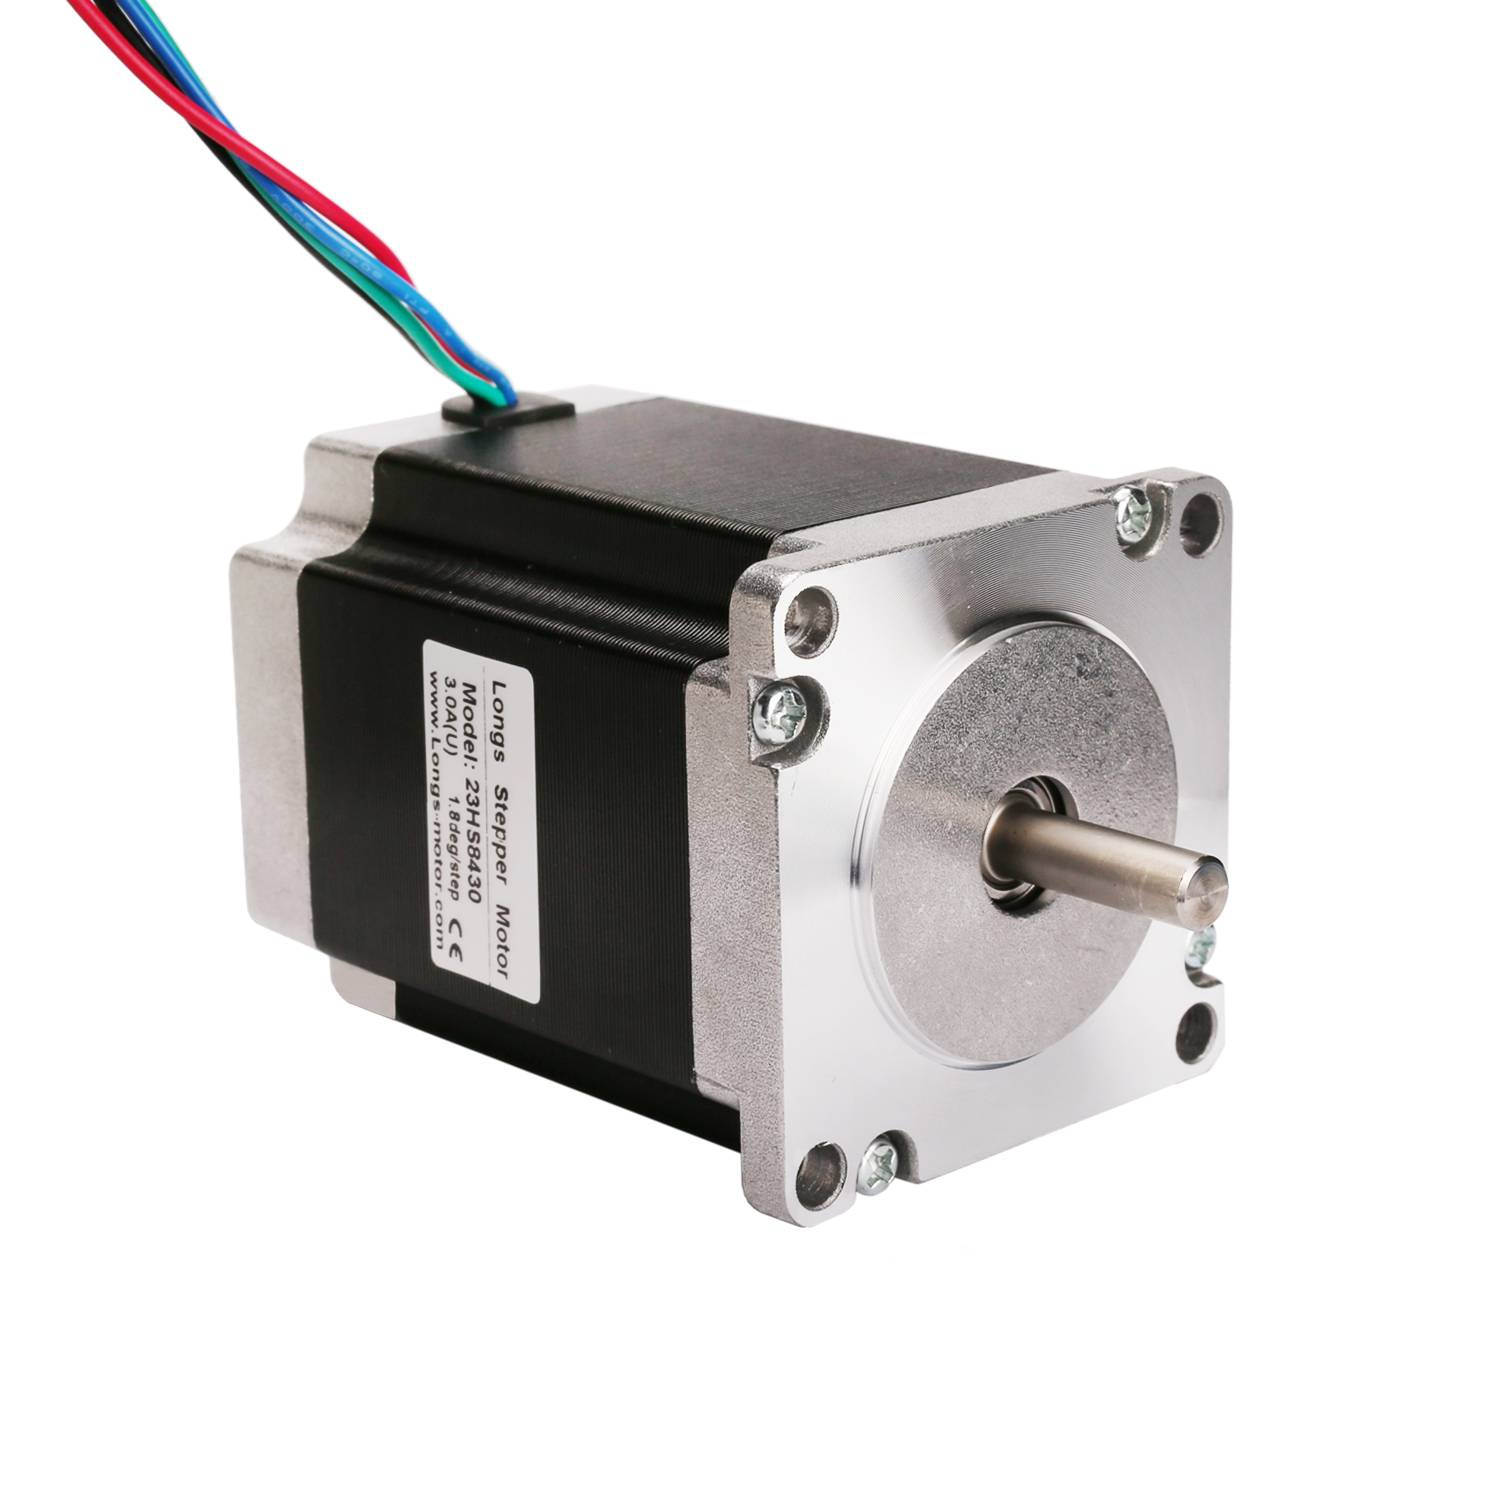 HYBRID STEPPER MOTOR-nema23HS Ms